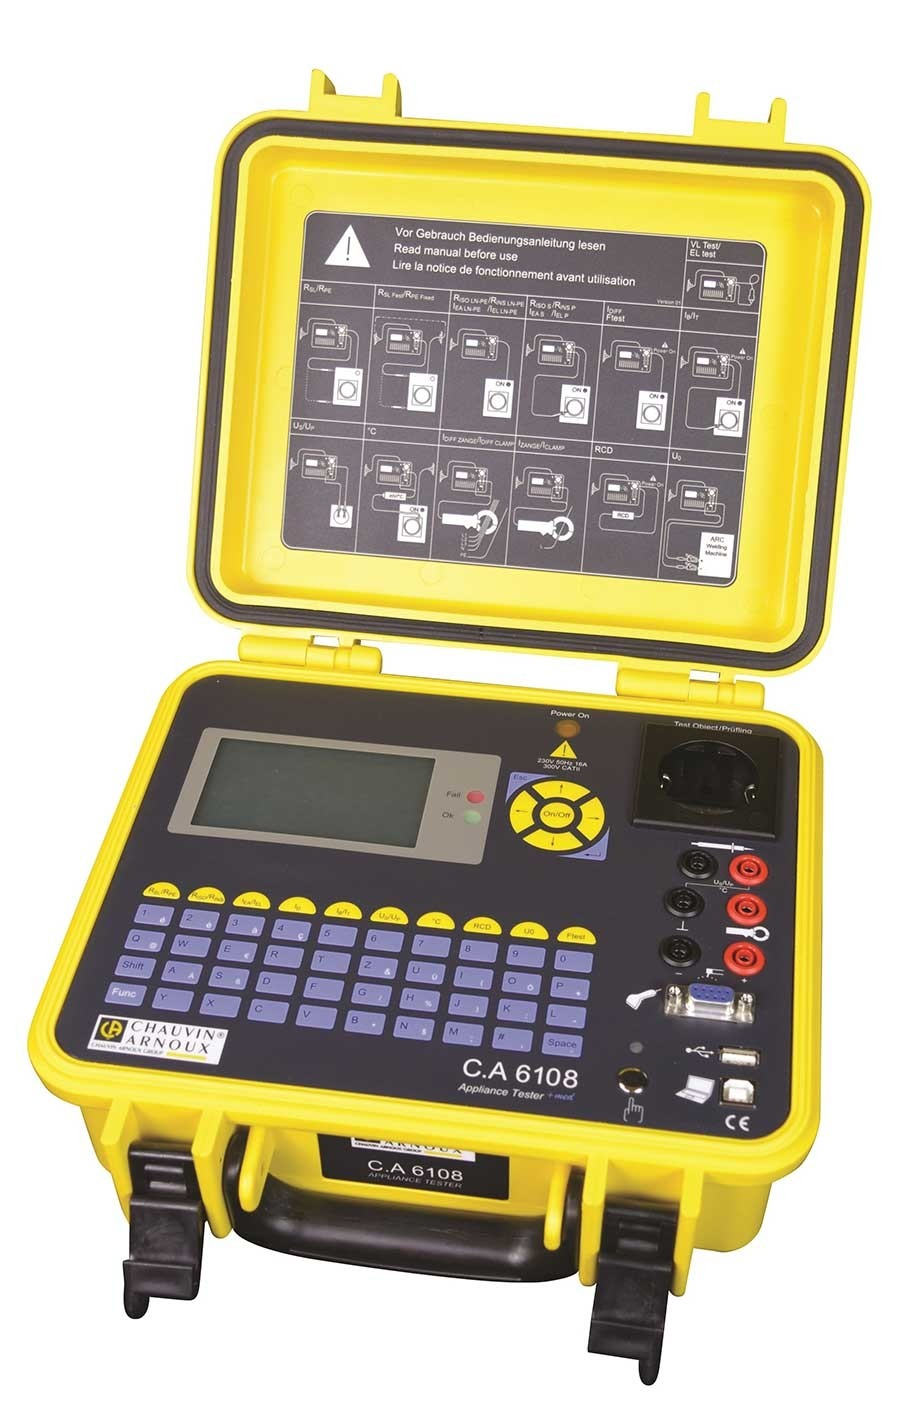 C.A 6108 GERATETESTER